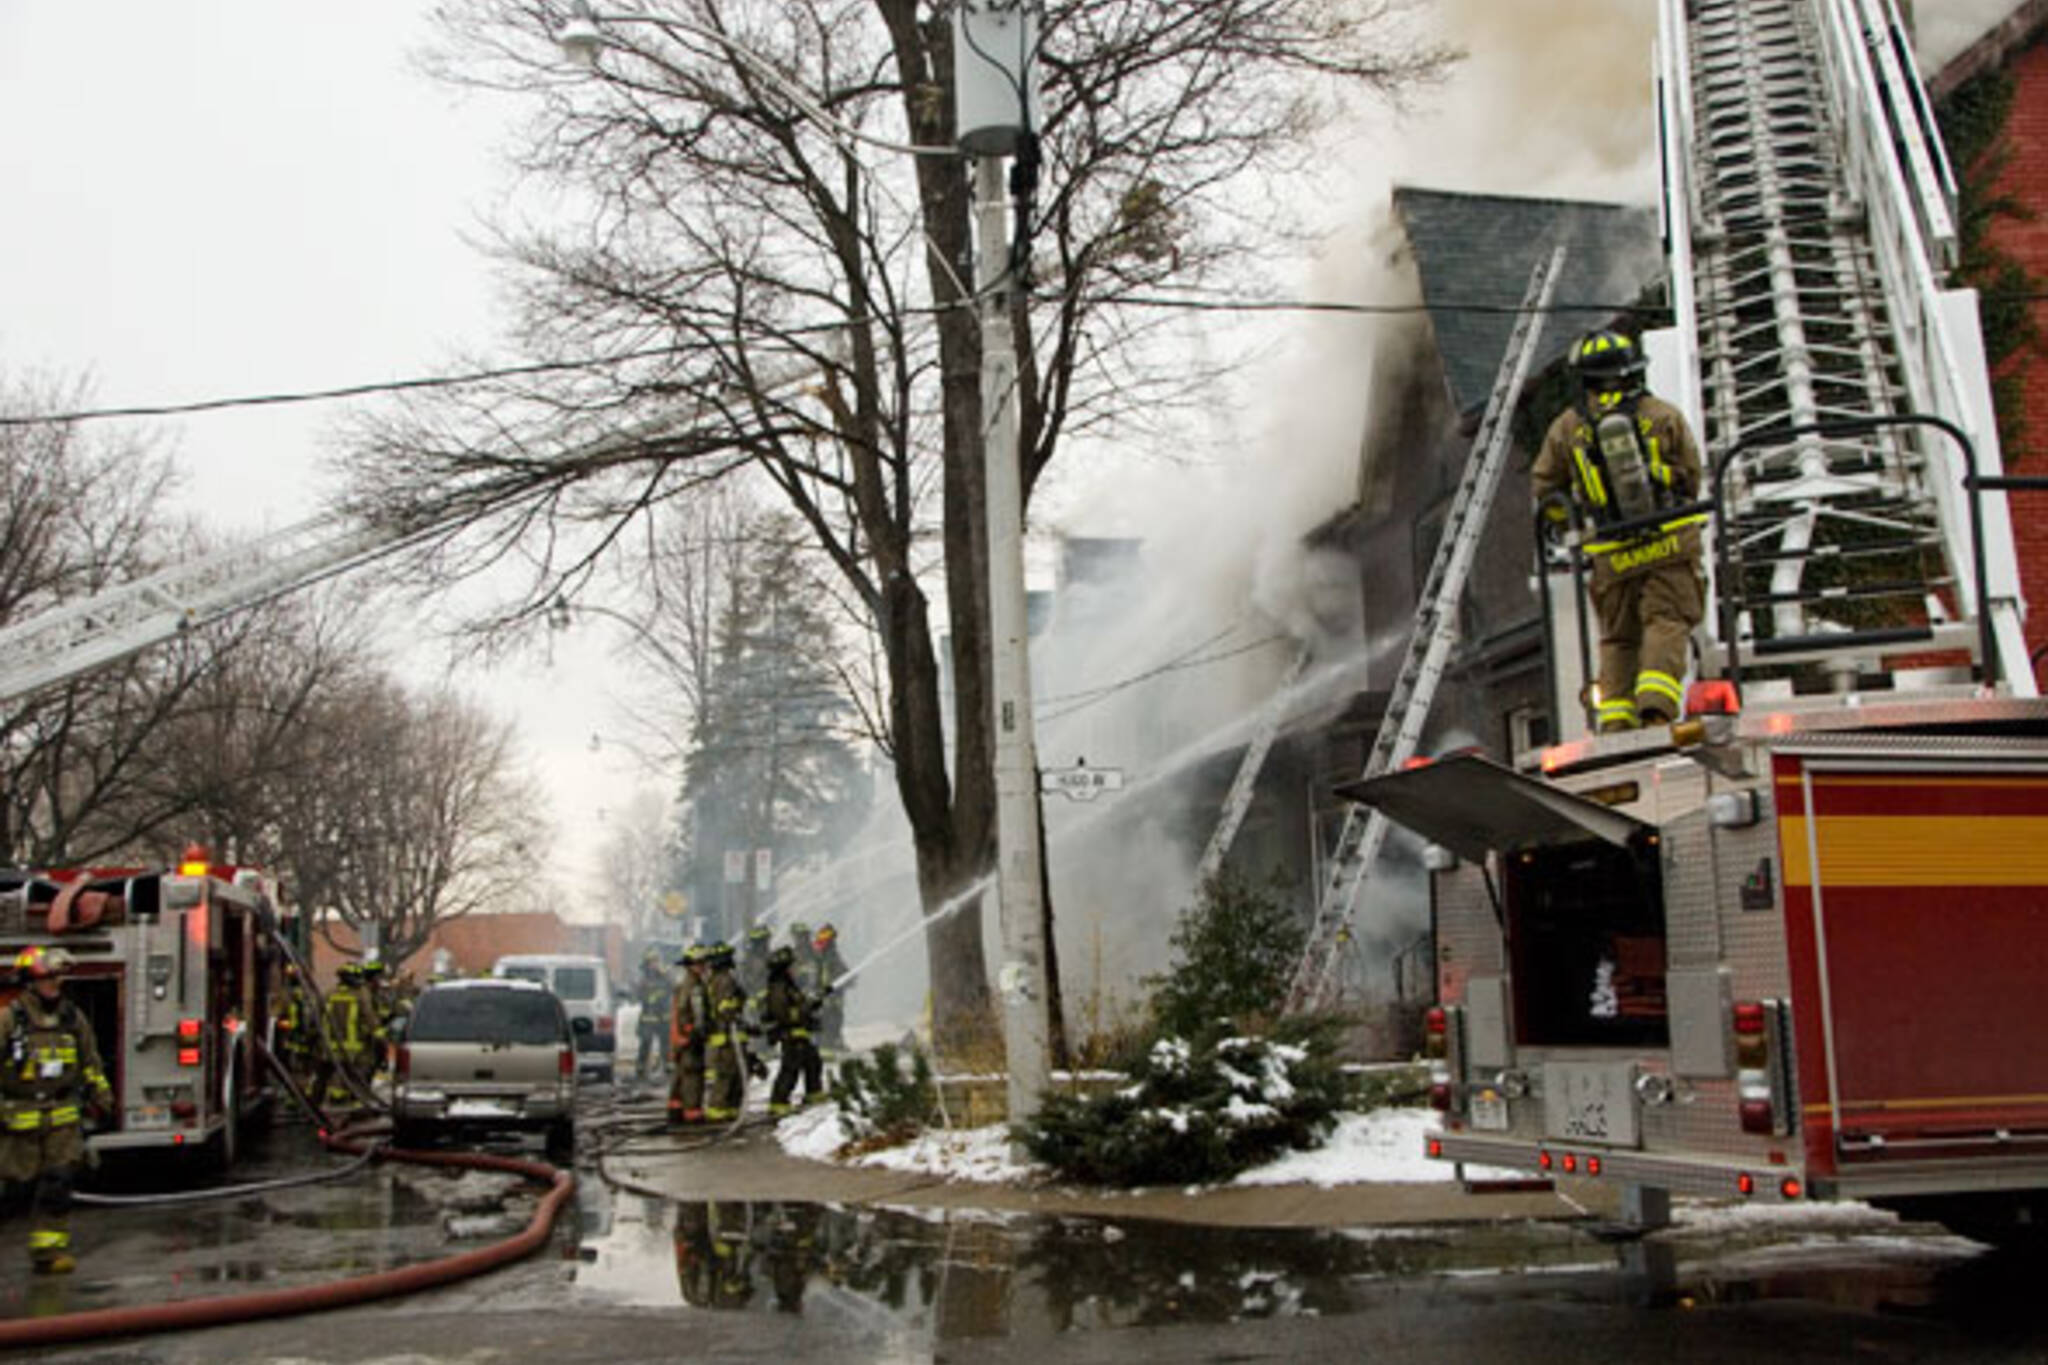 fire on Franklin St.